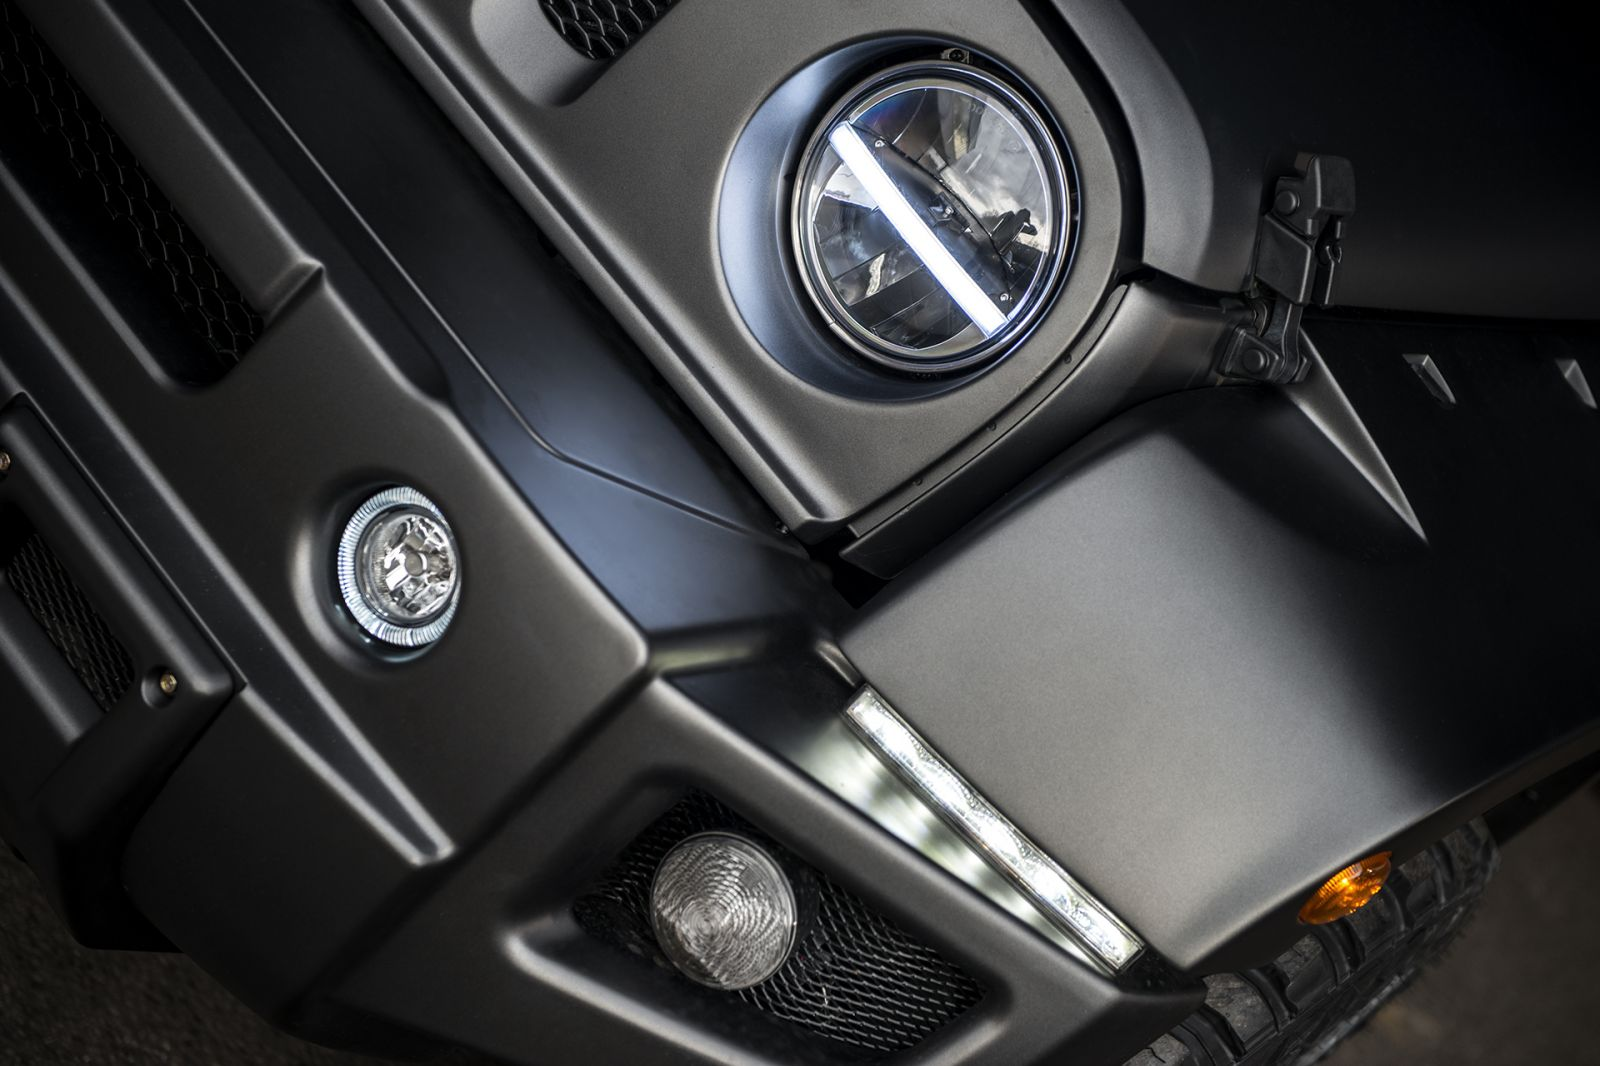 MERCEDES G CLASS / G63 AMG CTC - LED HEADLIGHTS WITH CENTRAL DRLS